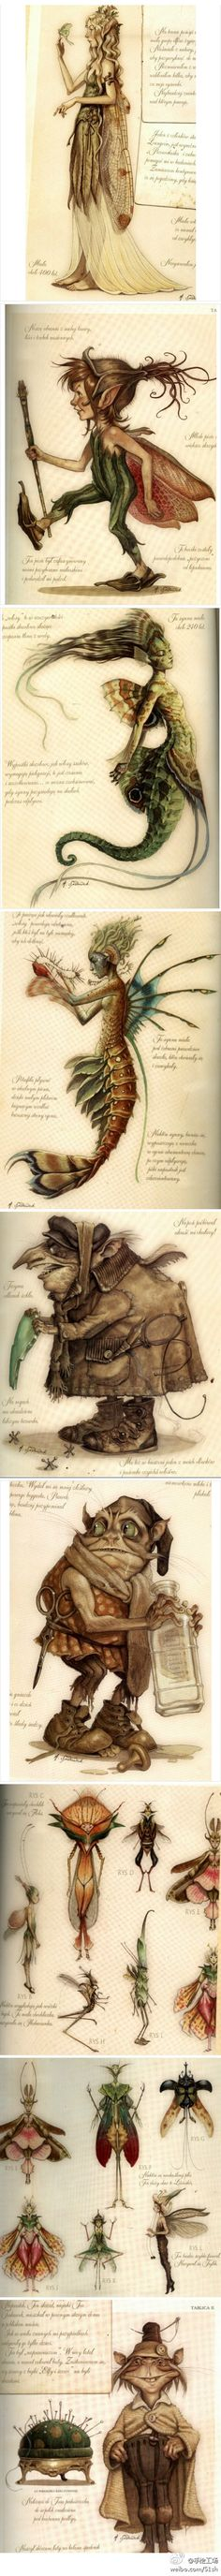 Goblins & Fairies. I have these books real fun to read, illustrations are great. They are published by Harry N. Abrams Inc. Gnomes is illustrated by Rien Pouttvliet and written by Wil Huygen. Faeries is described and illustrated by Brian Froud and Alan Lee. b m w...